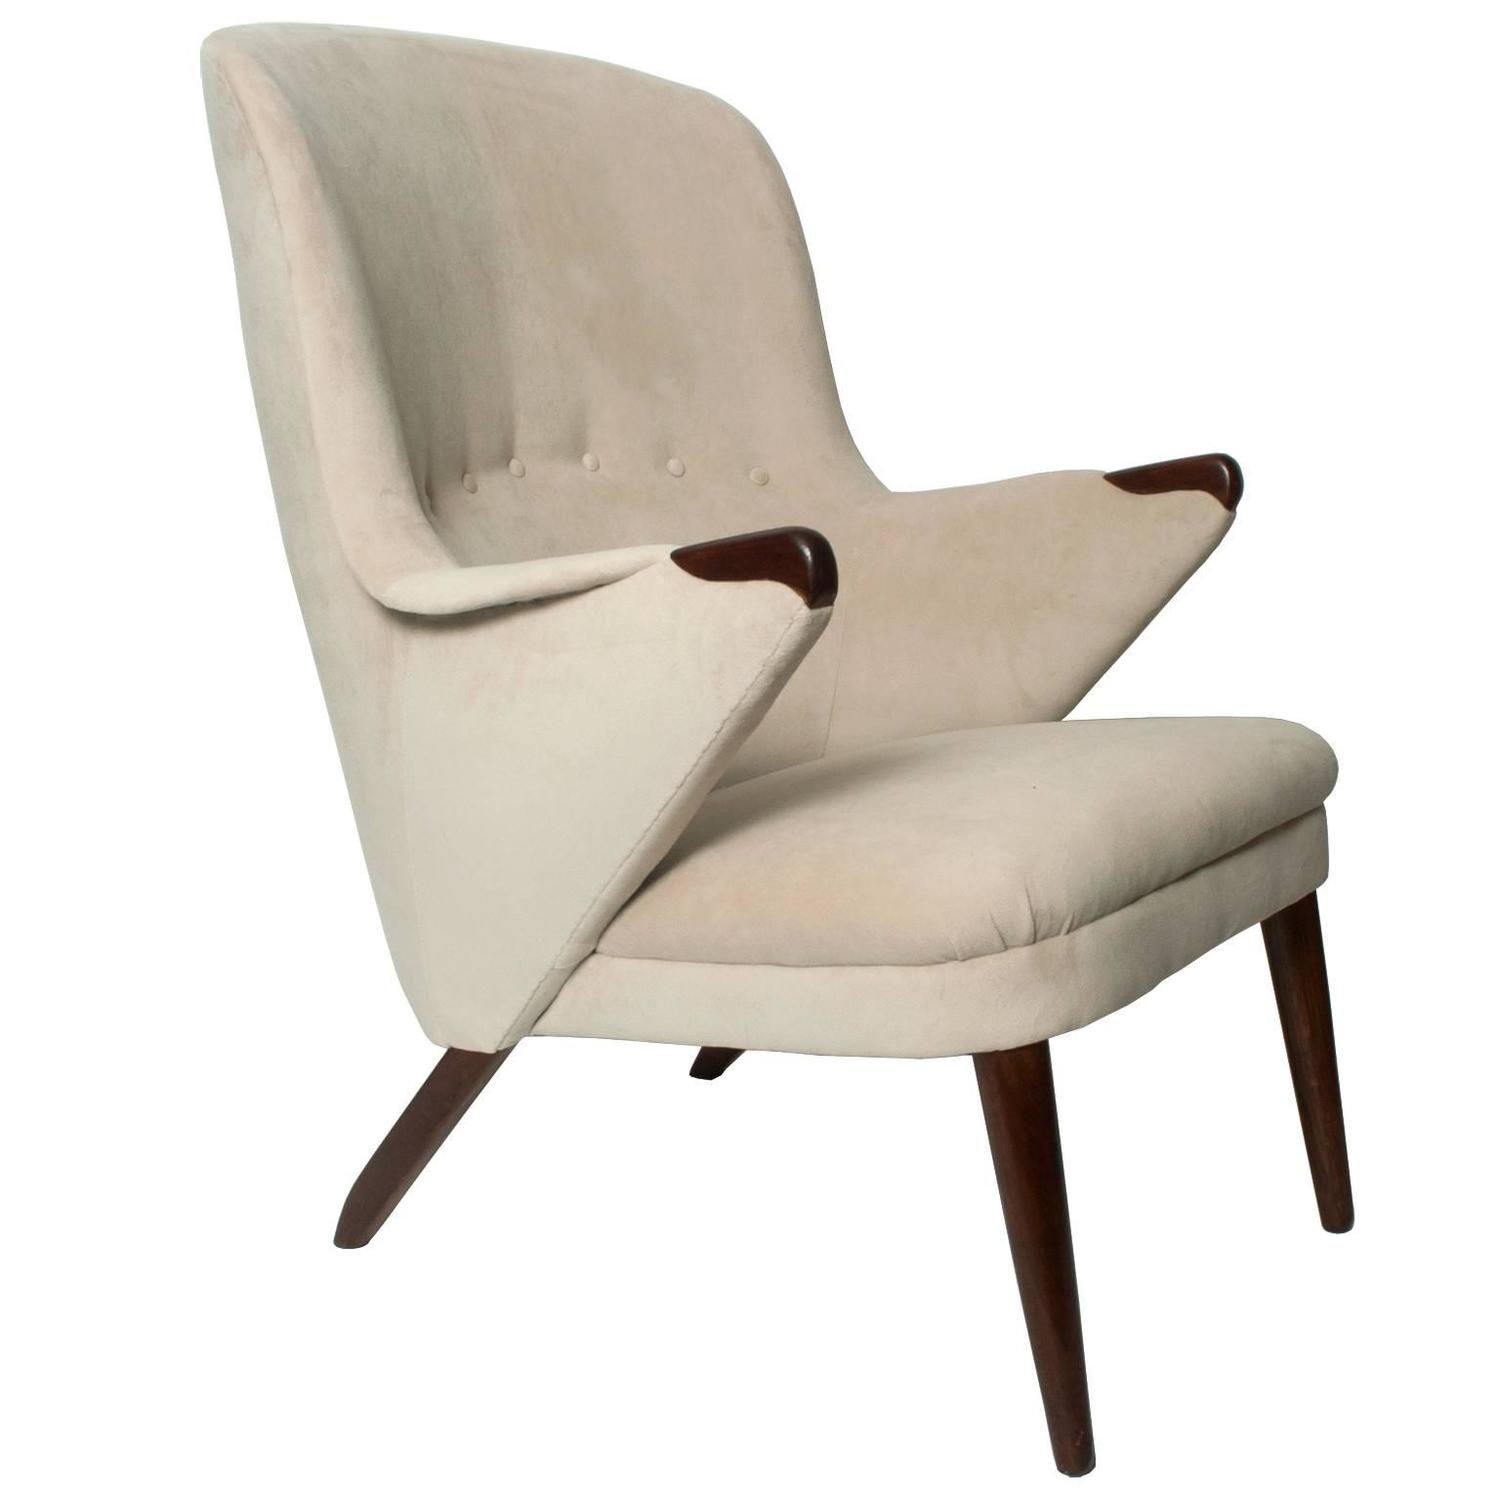 Delicieux Scandinavian Modern Curved High Back Upholstered Lounge Chair With Teak  Legs For Sale At 1stdibs